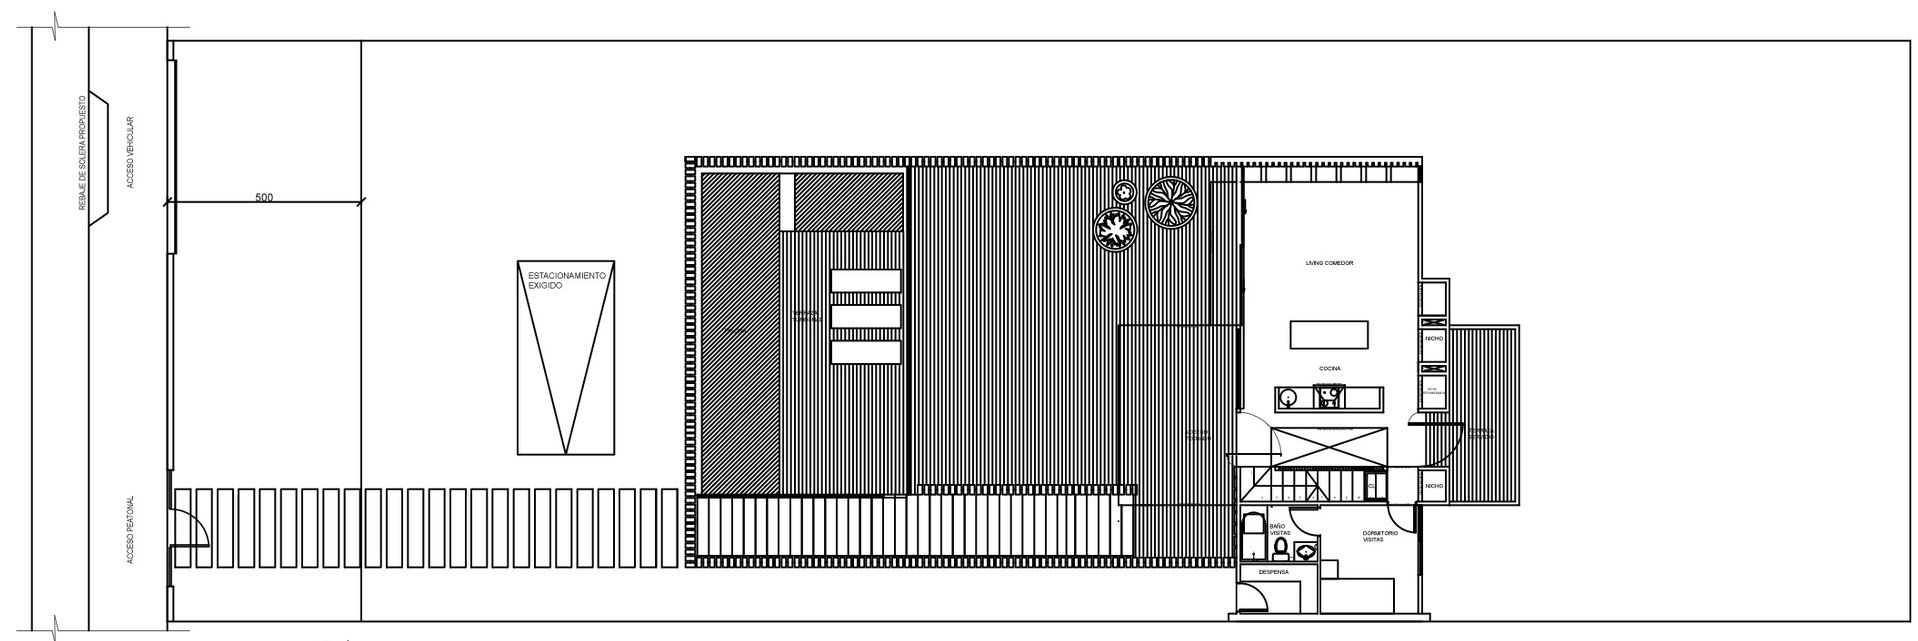 Ground Floor Plan, Family Home in Algarrobo, Chile